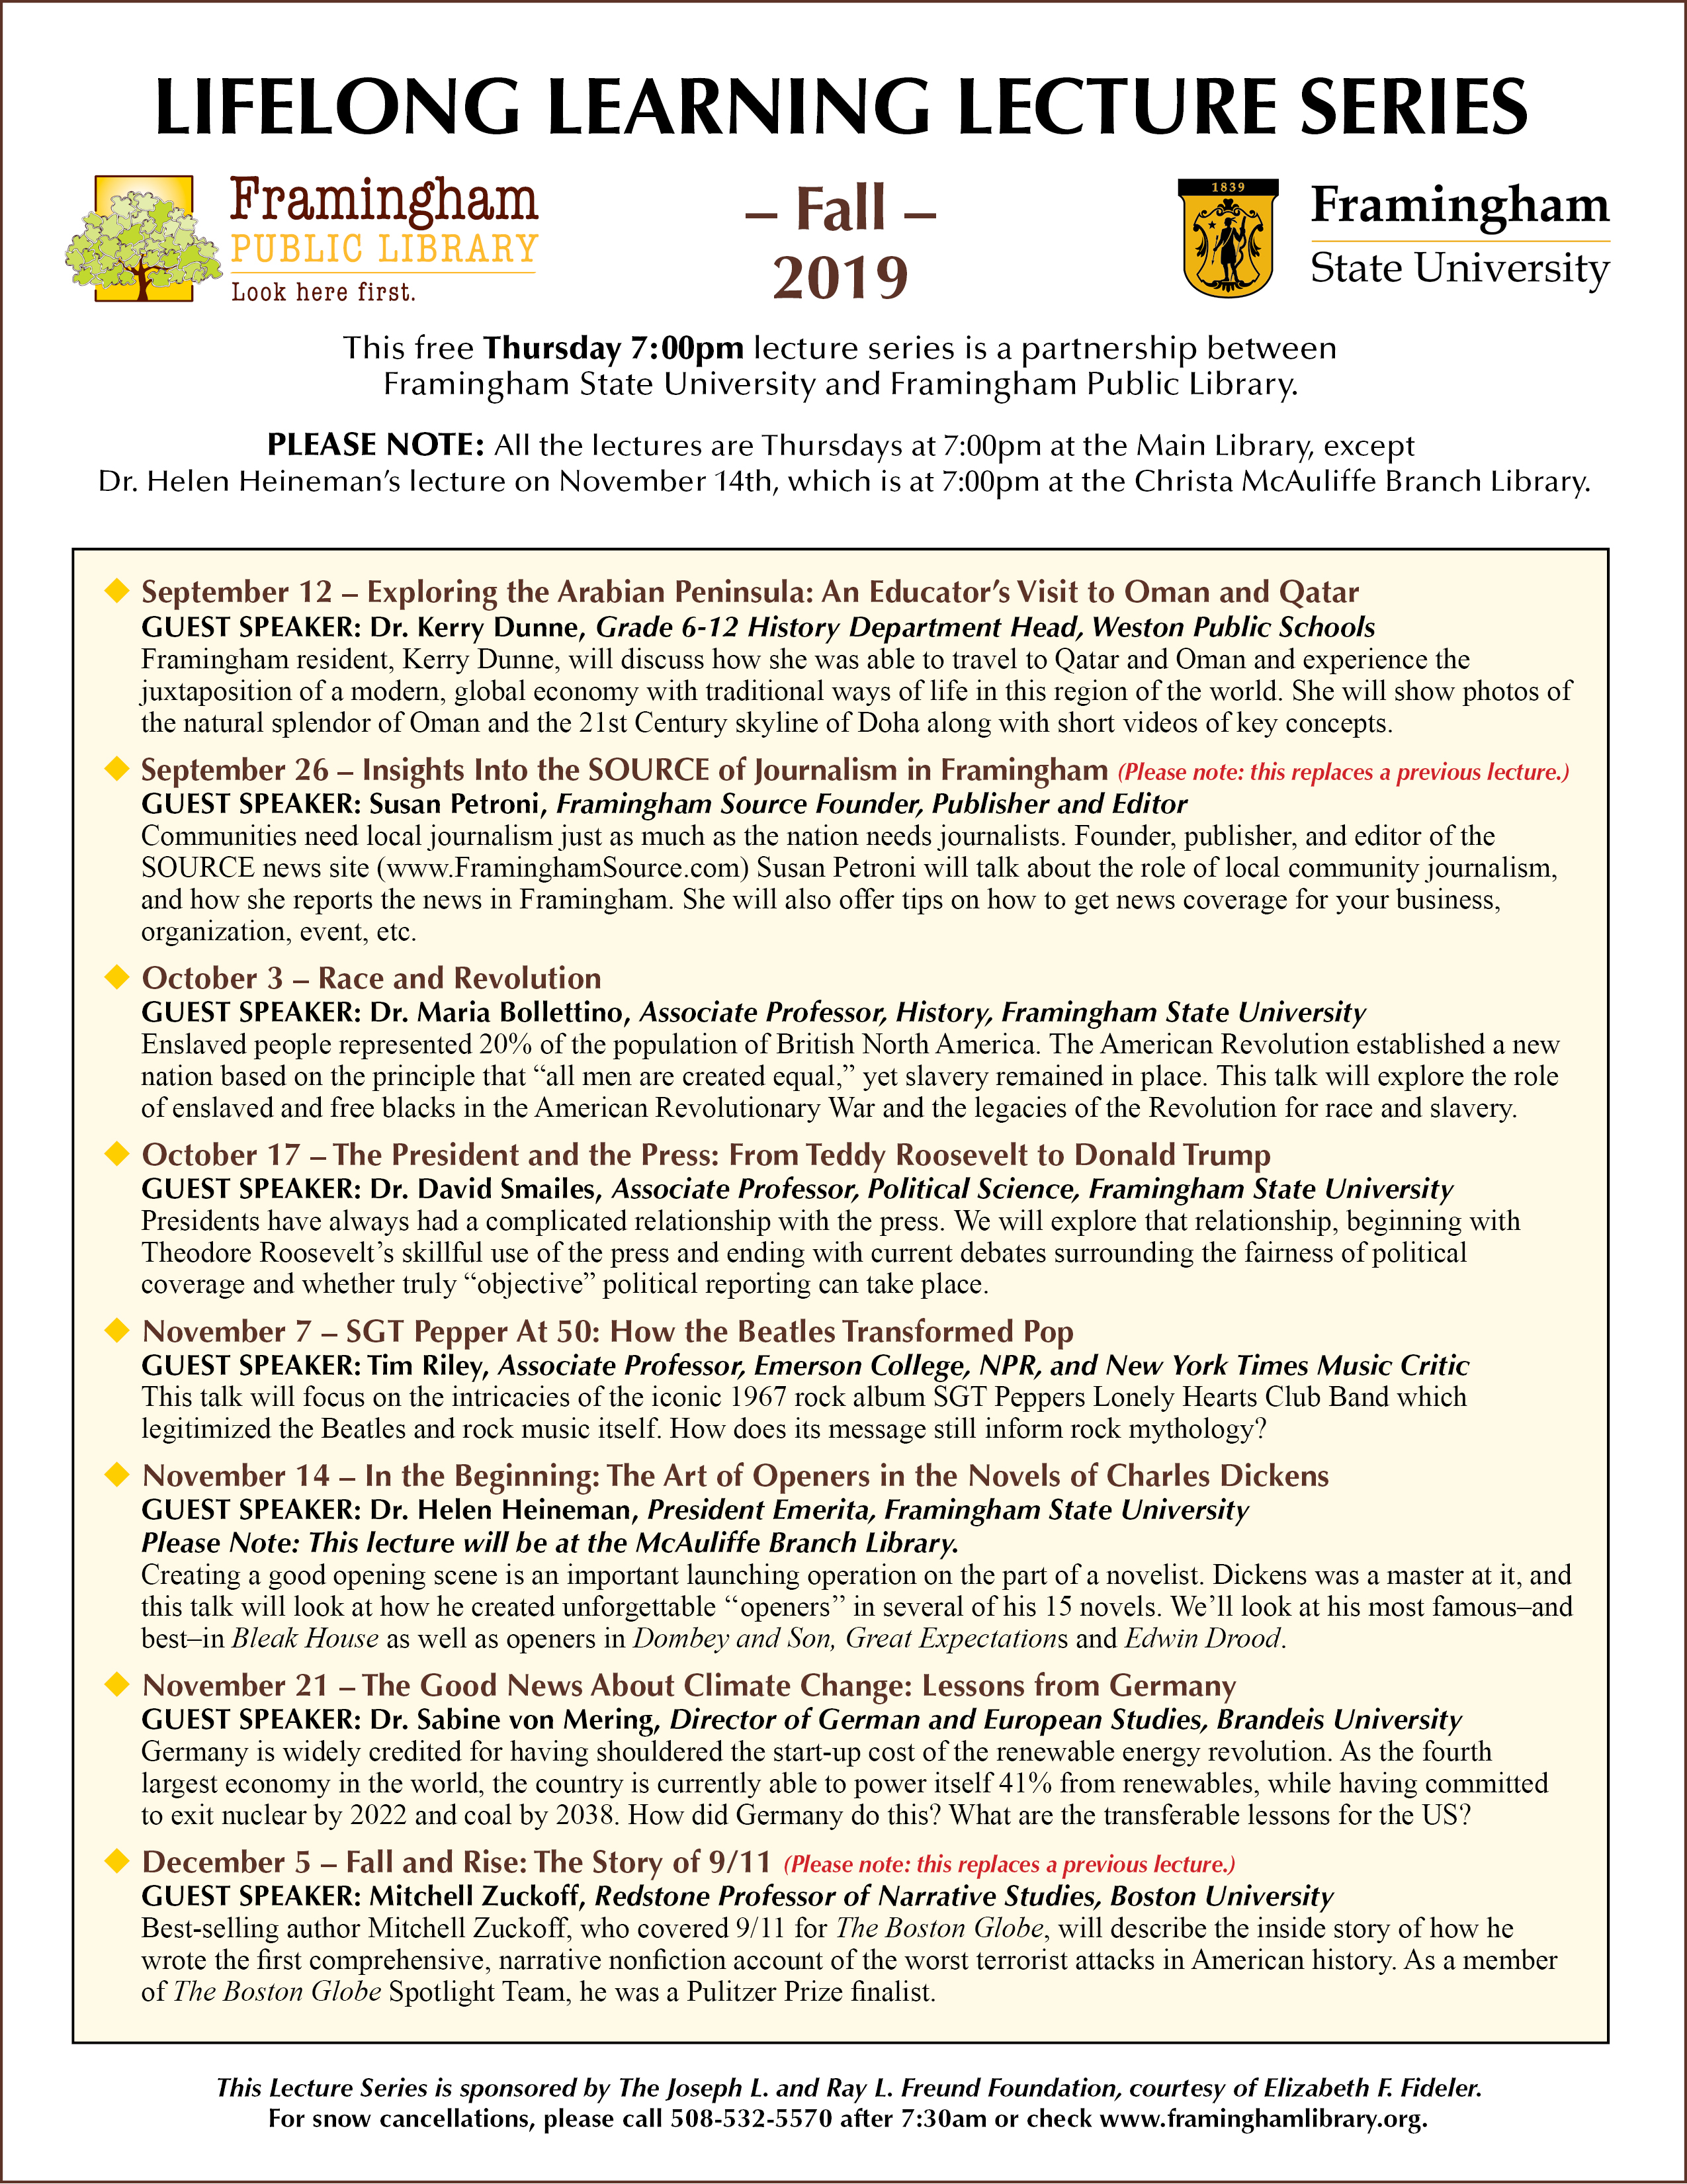 Lifelong learning lecture series poster fall 2019